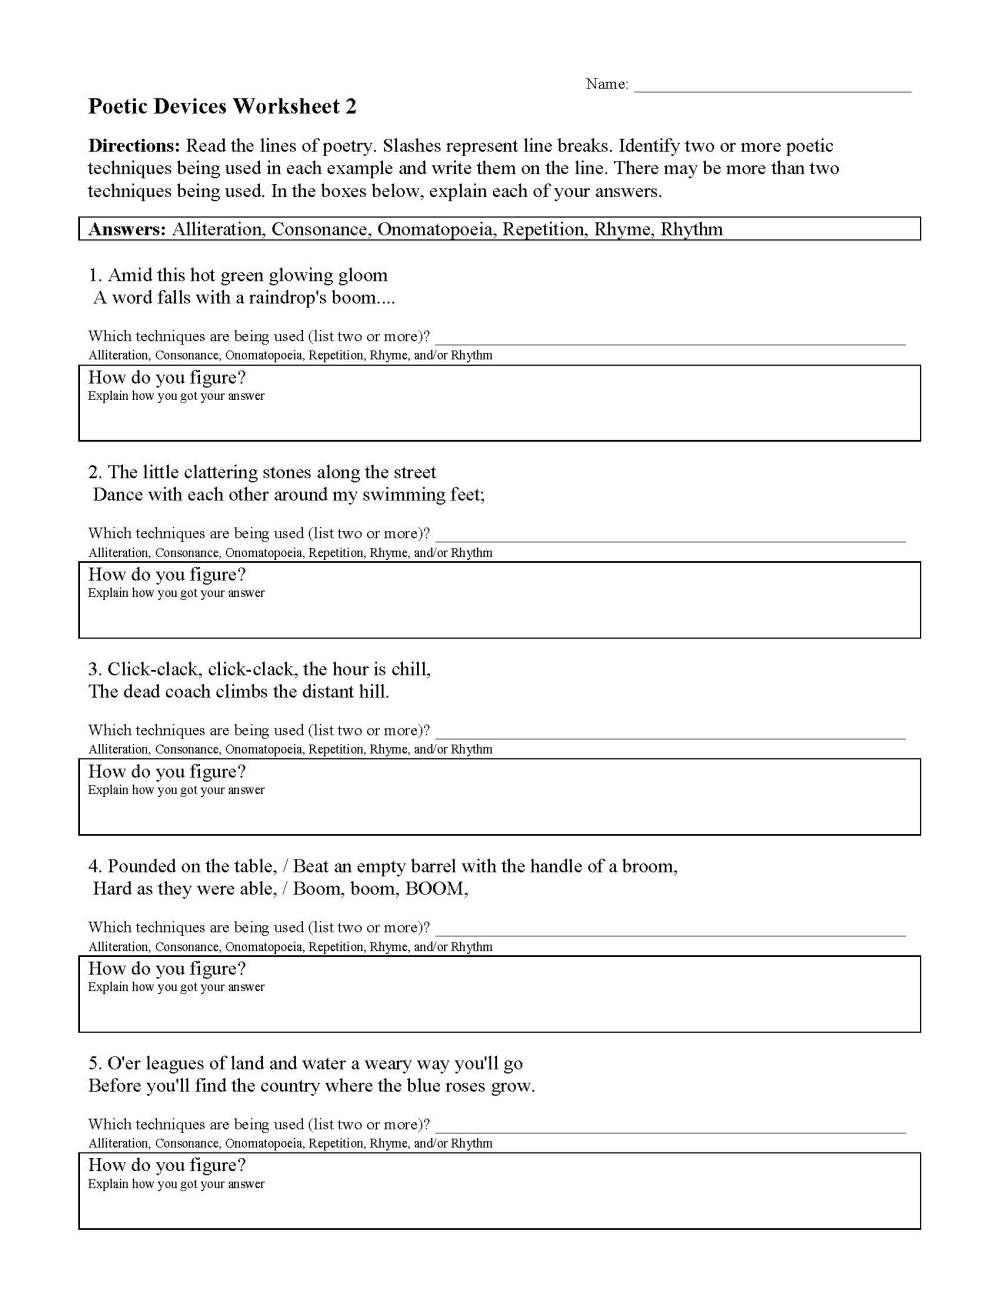 medium resolution of 32 Sound Devices In Poetry Worksheet - Worksheet Project List